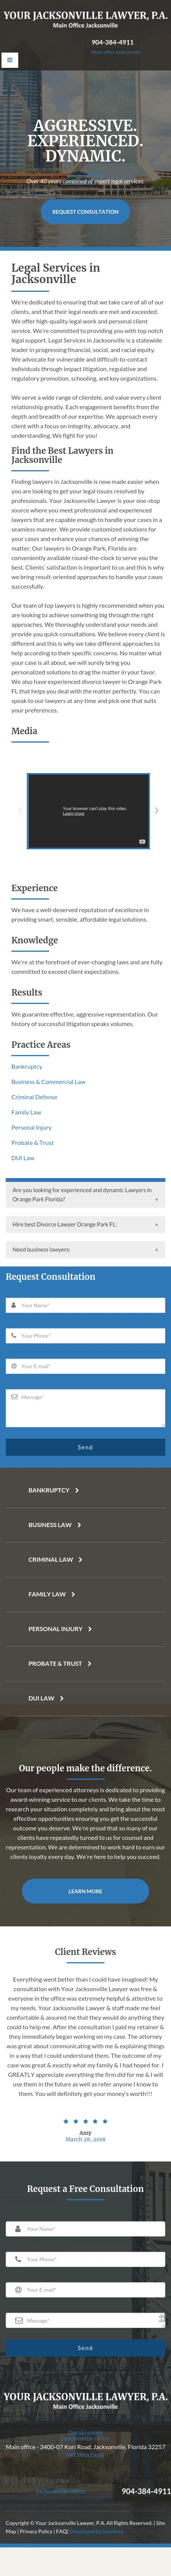 Your Jacksonville Lawyer - Jacksonville FL Lawyers